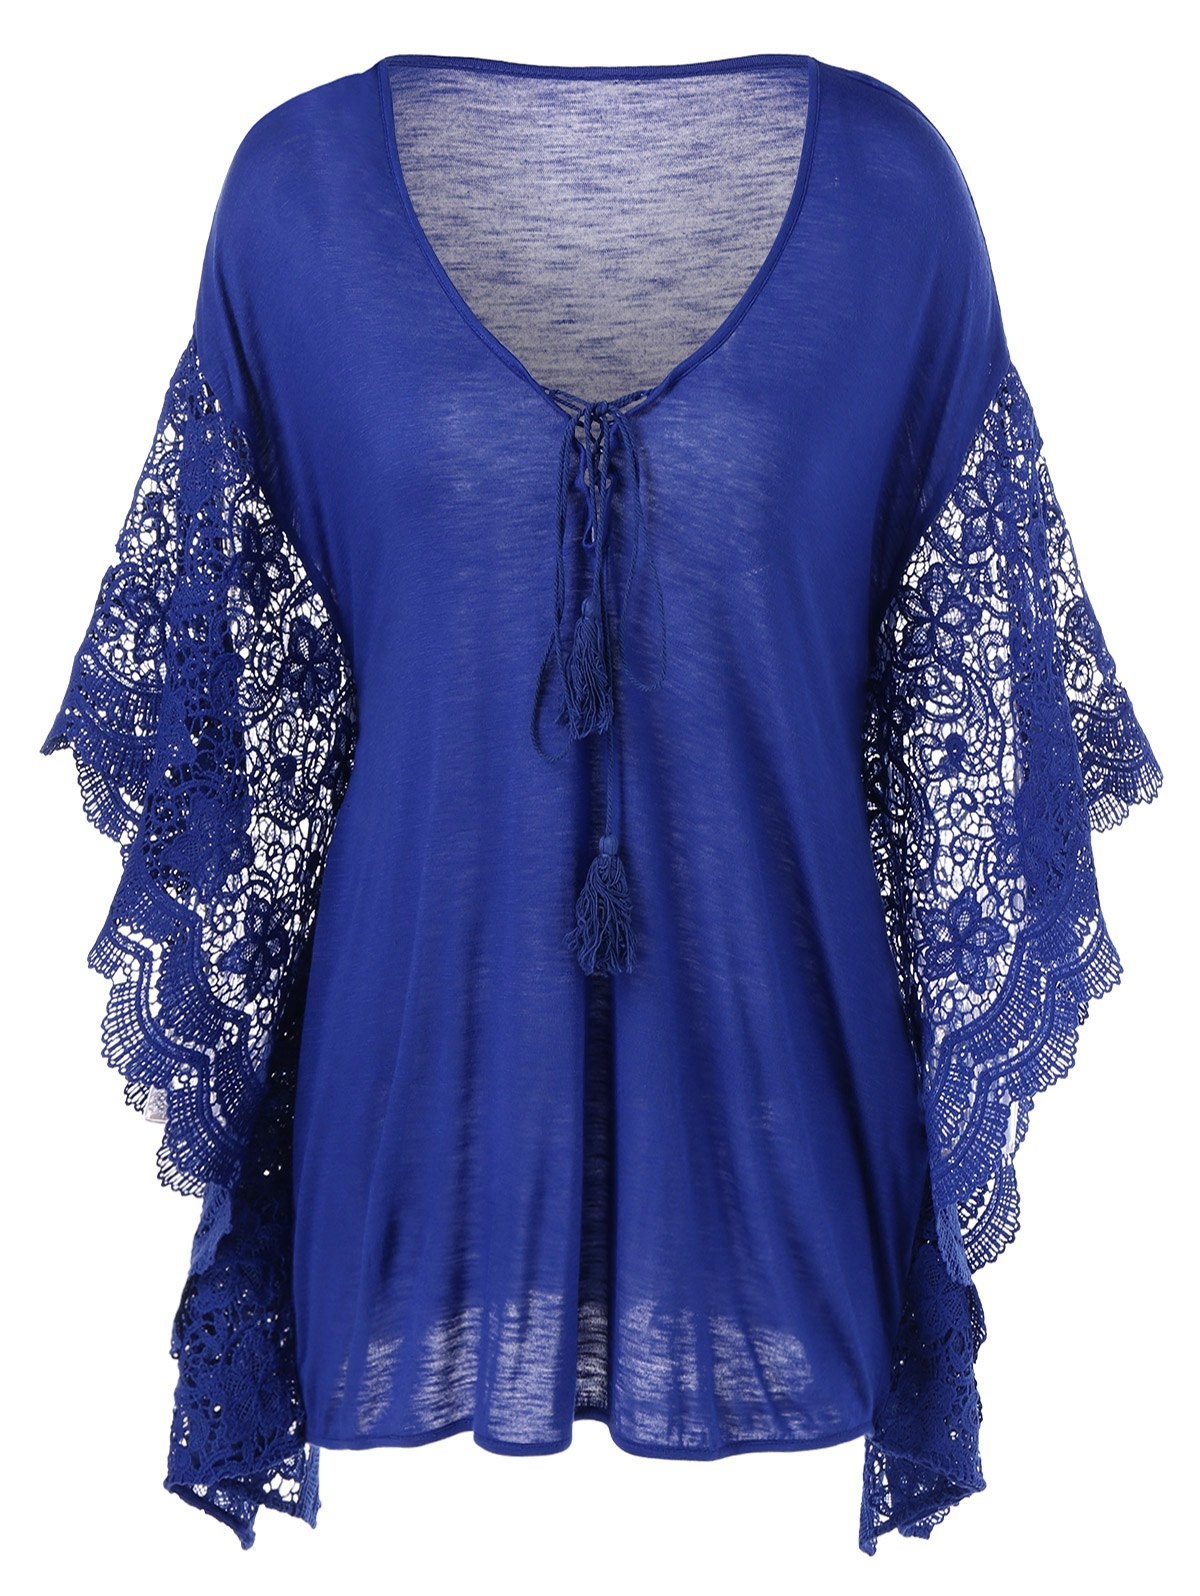 Plus Size Butterfly Sleeve Crochet Trim Blouse Lace Tops - BLUE XL